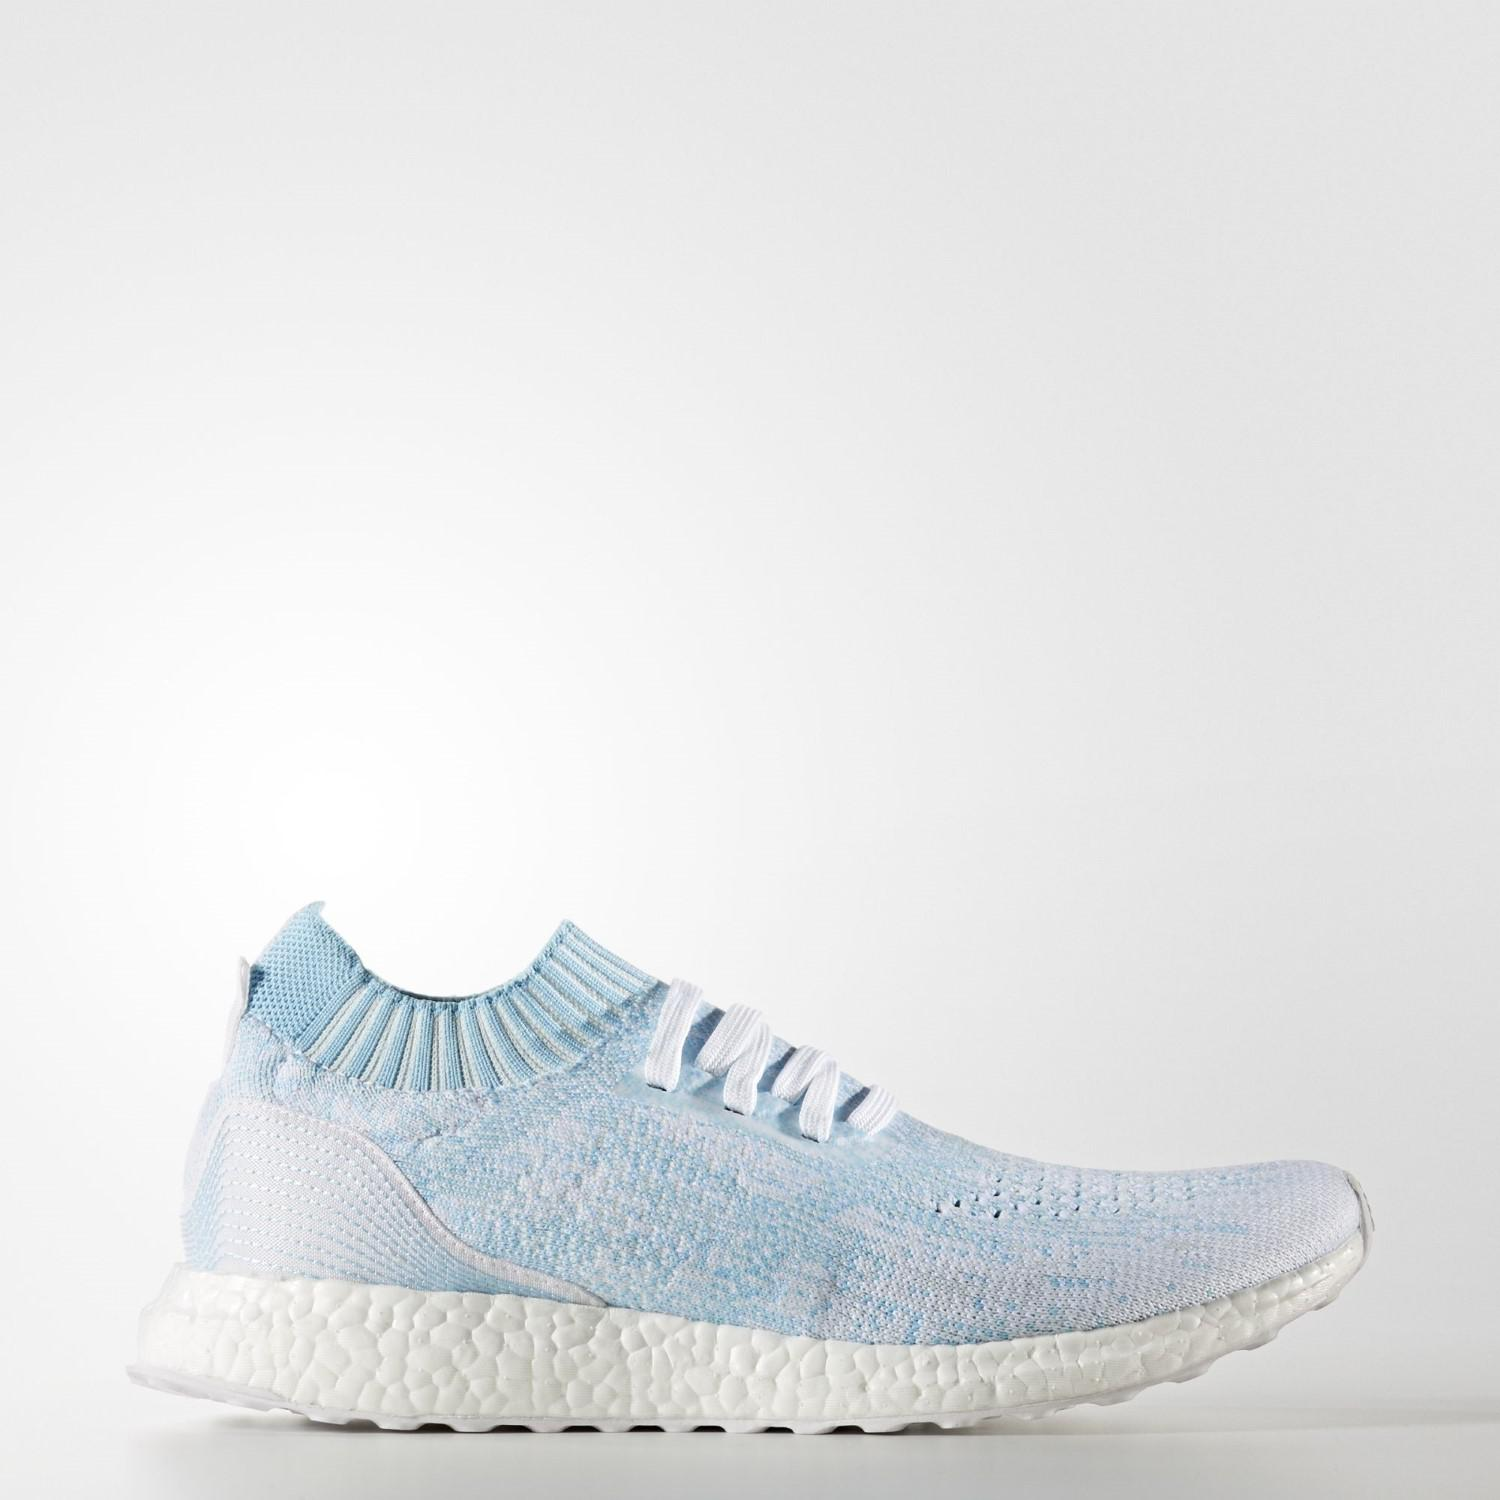 8246eddc9 Lyst - adidas Ultraboost Uncaged Parley Shoes in Blue for Men